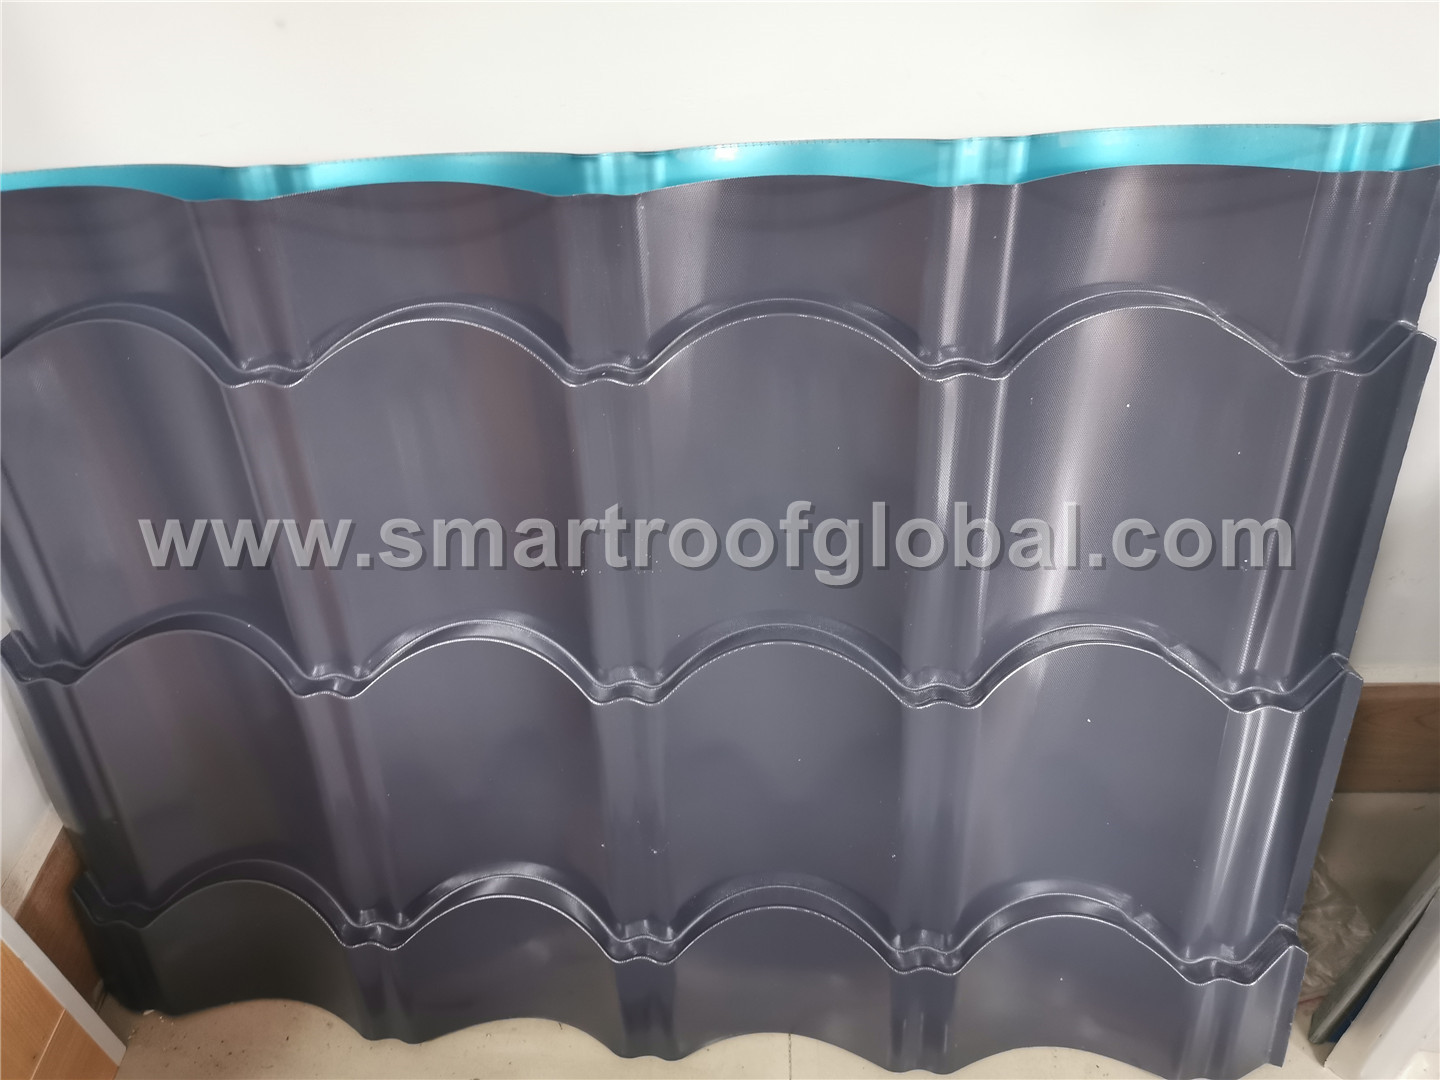 Home Depot Sheet Metal Roofing Featured Image